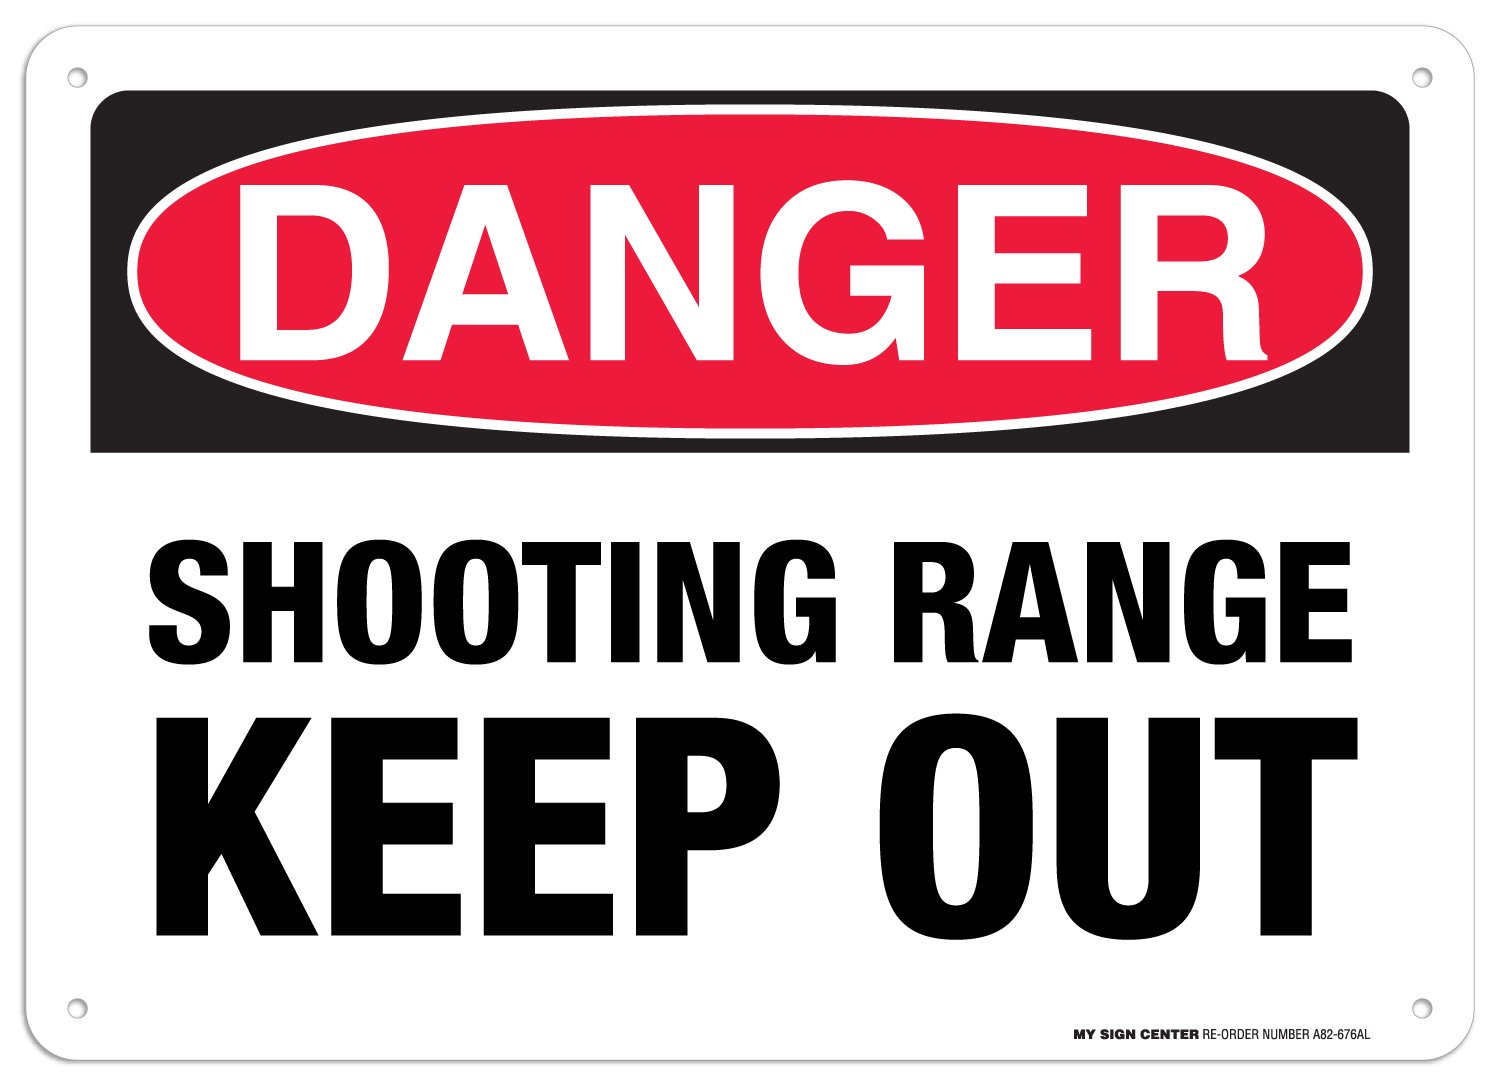 """Danger Shooting Range Sign Keep Out, Made Out of .040 Rust-Free Aluminum, Indoor/Outdoor Use, UV Protected and Fade-Resistant, 10"""" x 14"""", by My Sign Center"""